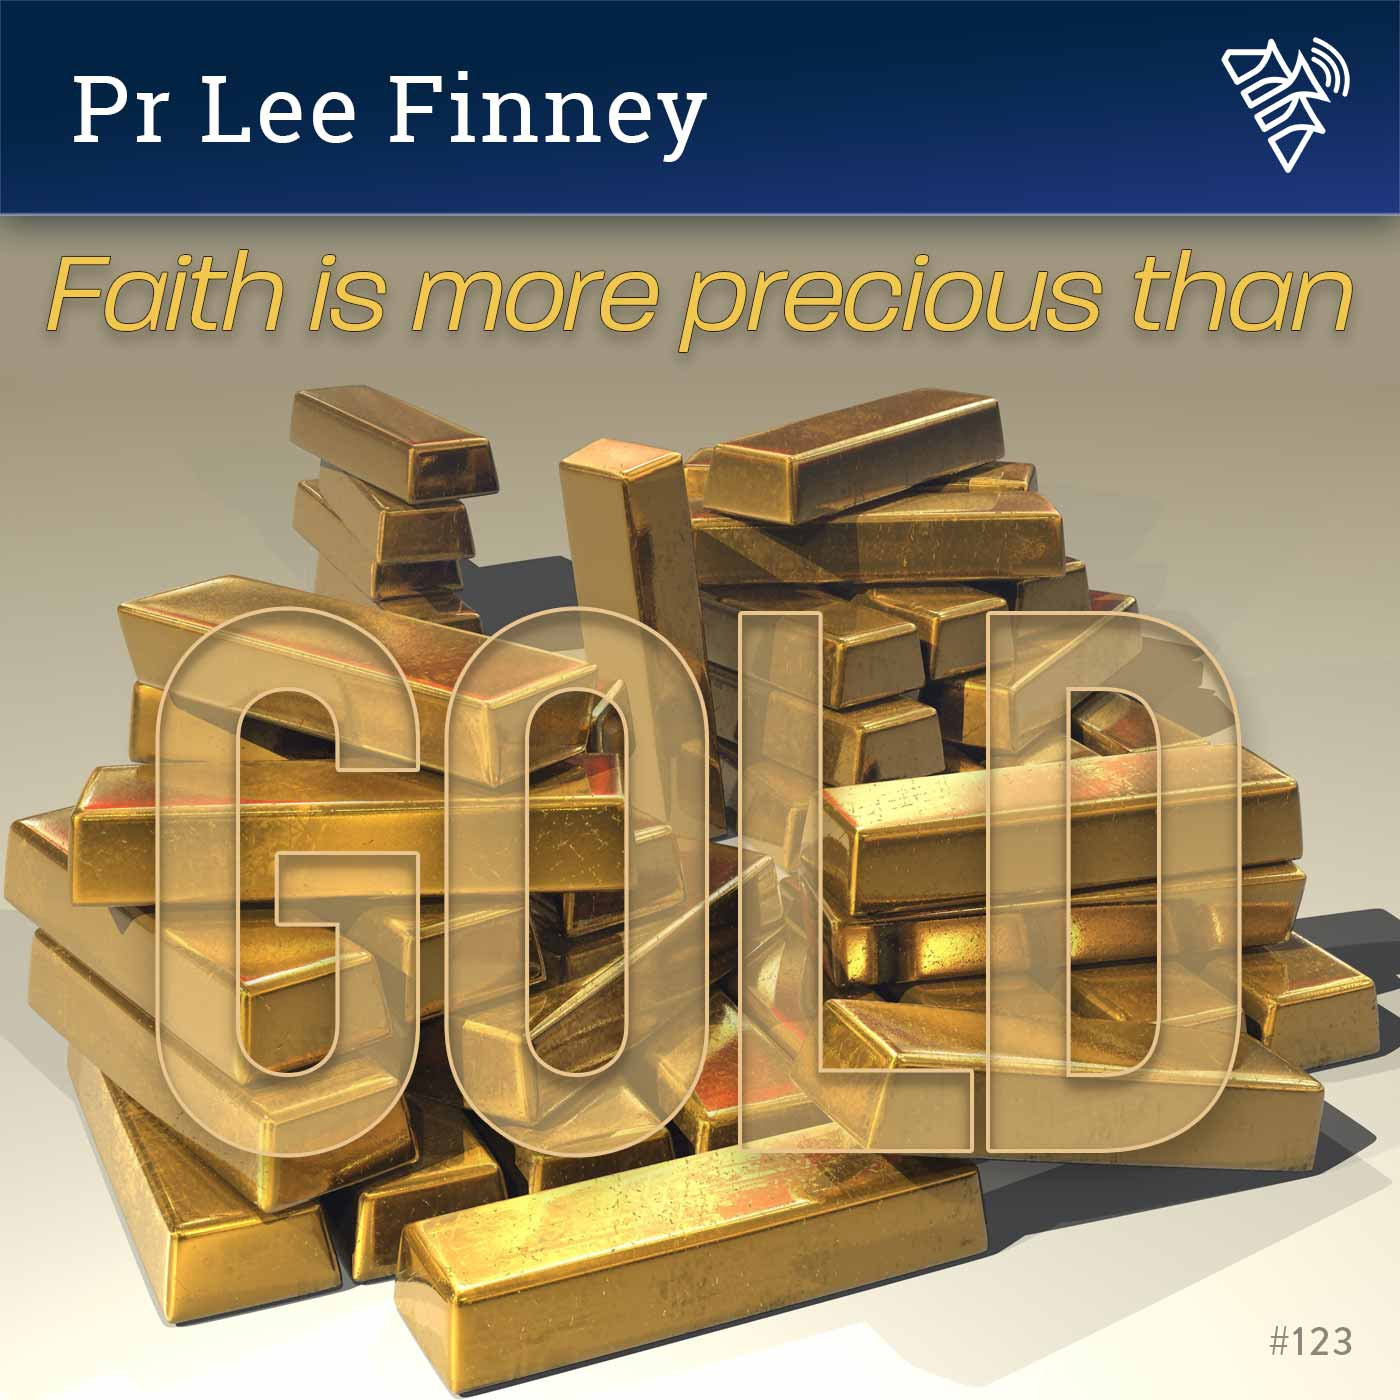 Faith is more precious than gold